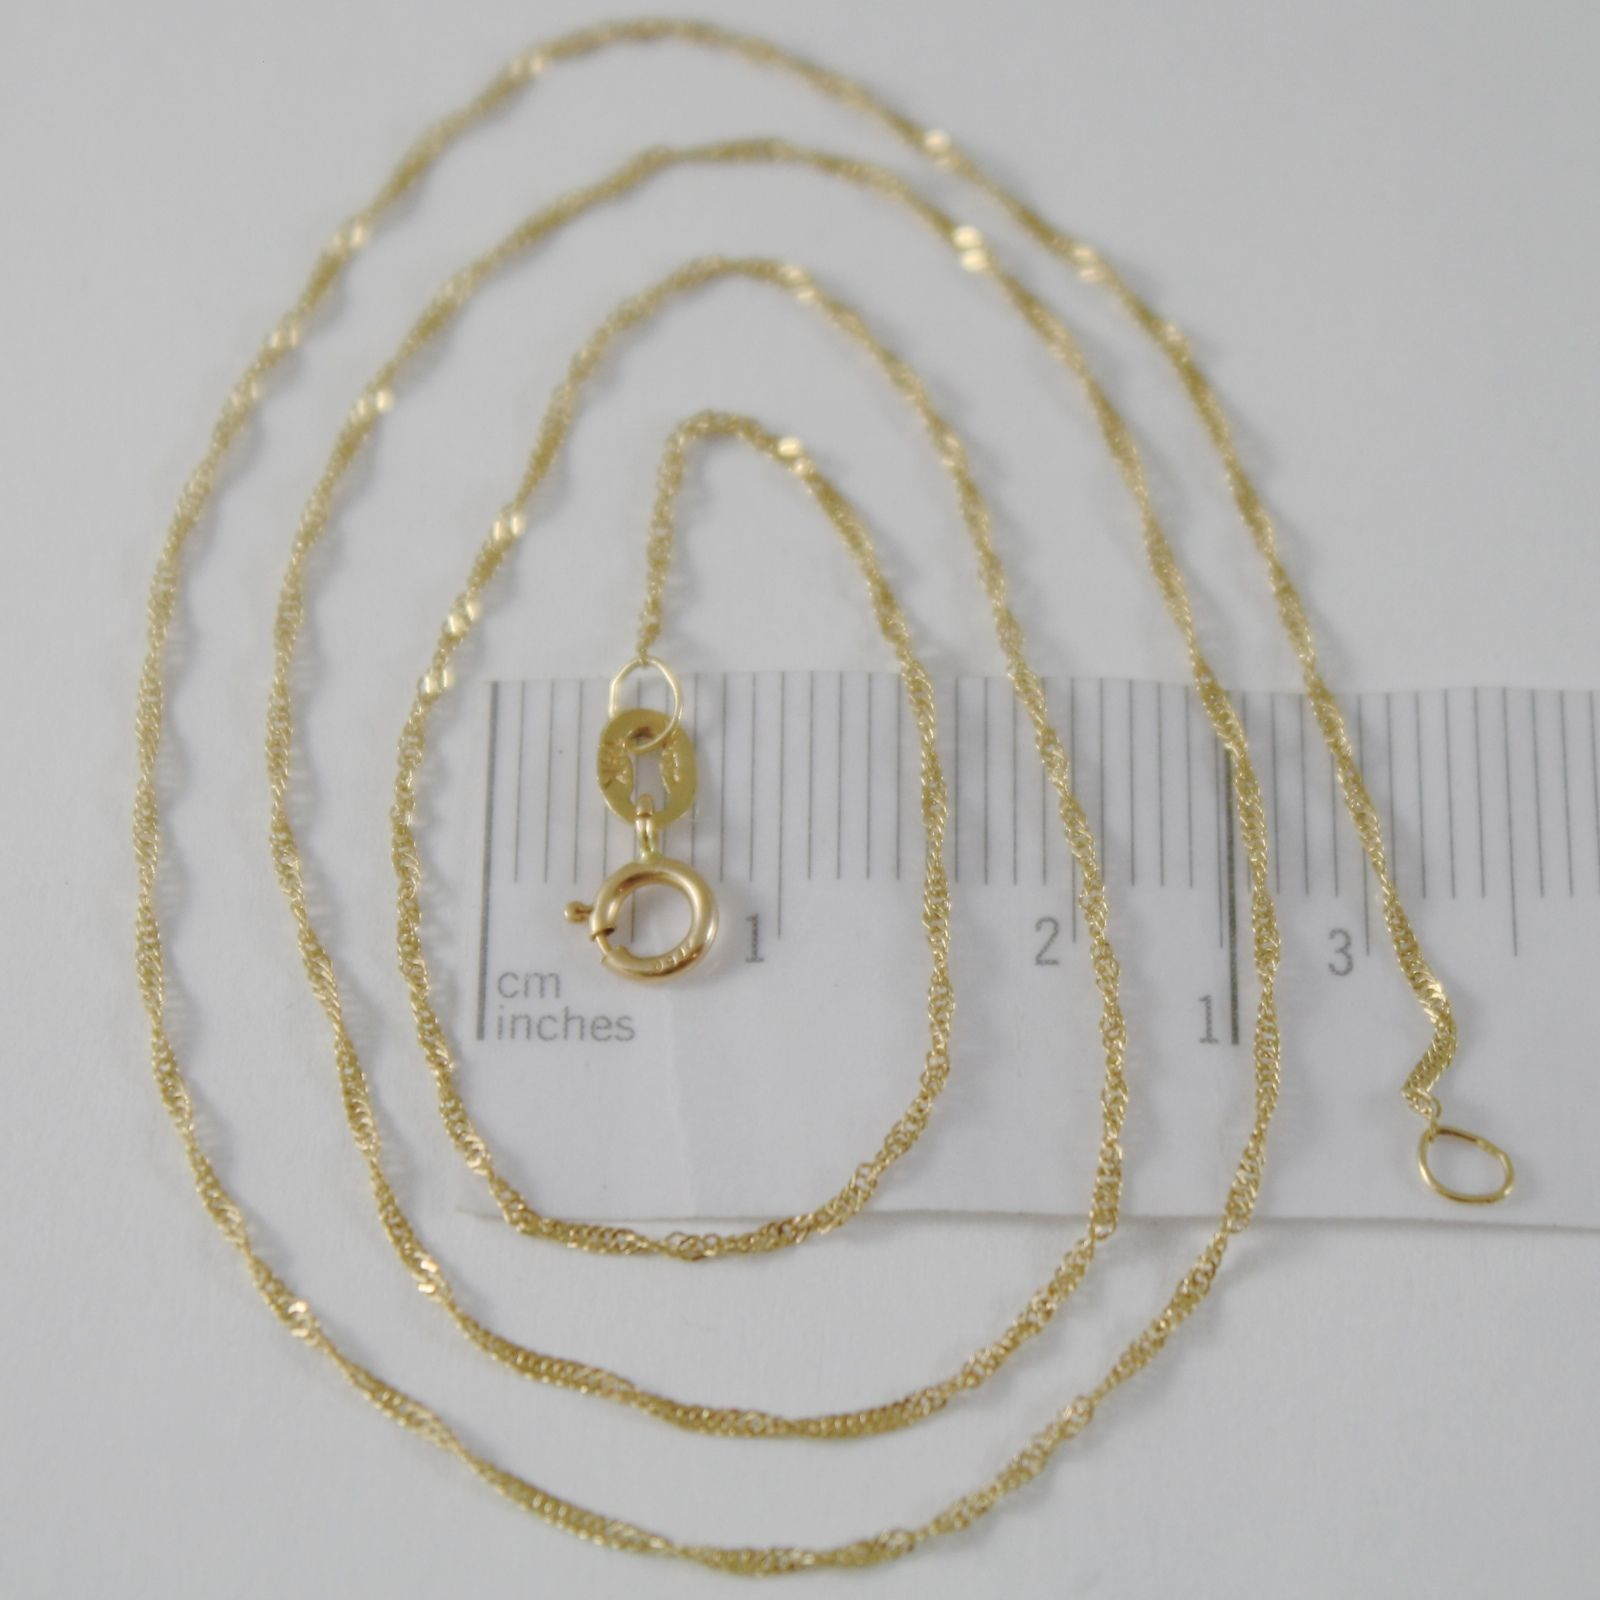 SOLID 18K YELLOW GOLD SINGAPORE BRAID ROPE CHAIN 18 INCHES, 1 MM, MADE IN ITALY